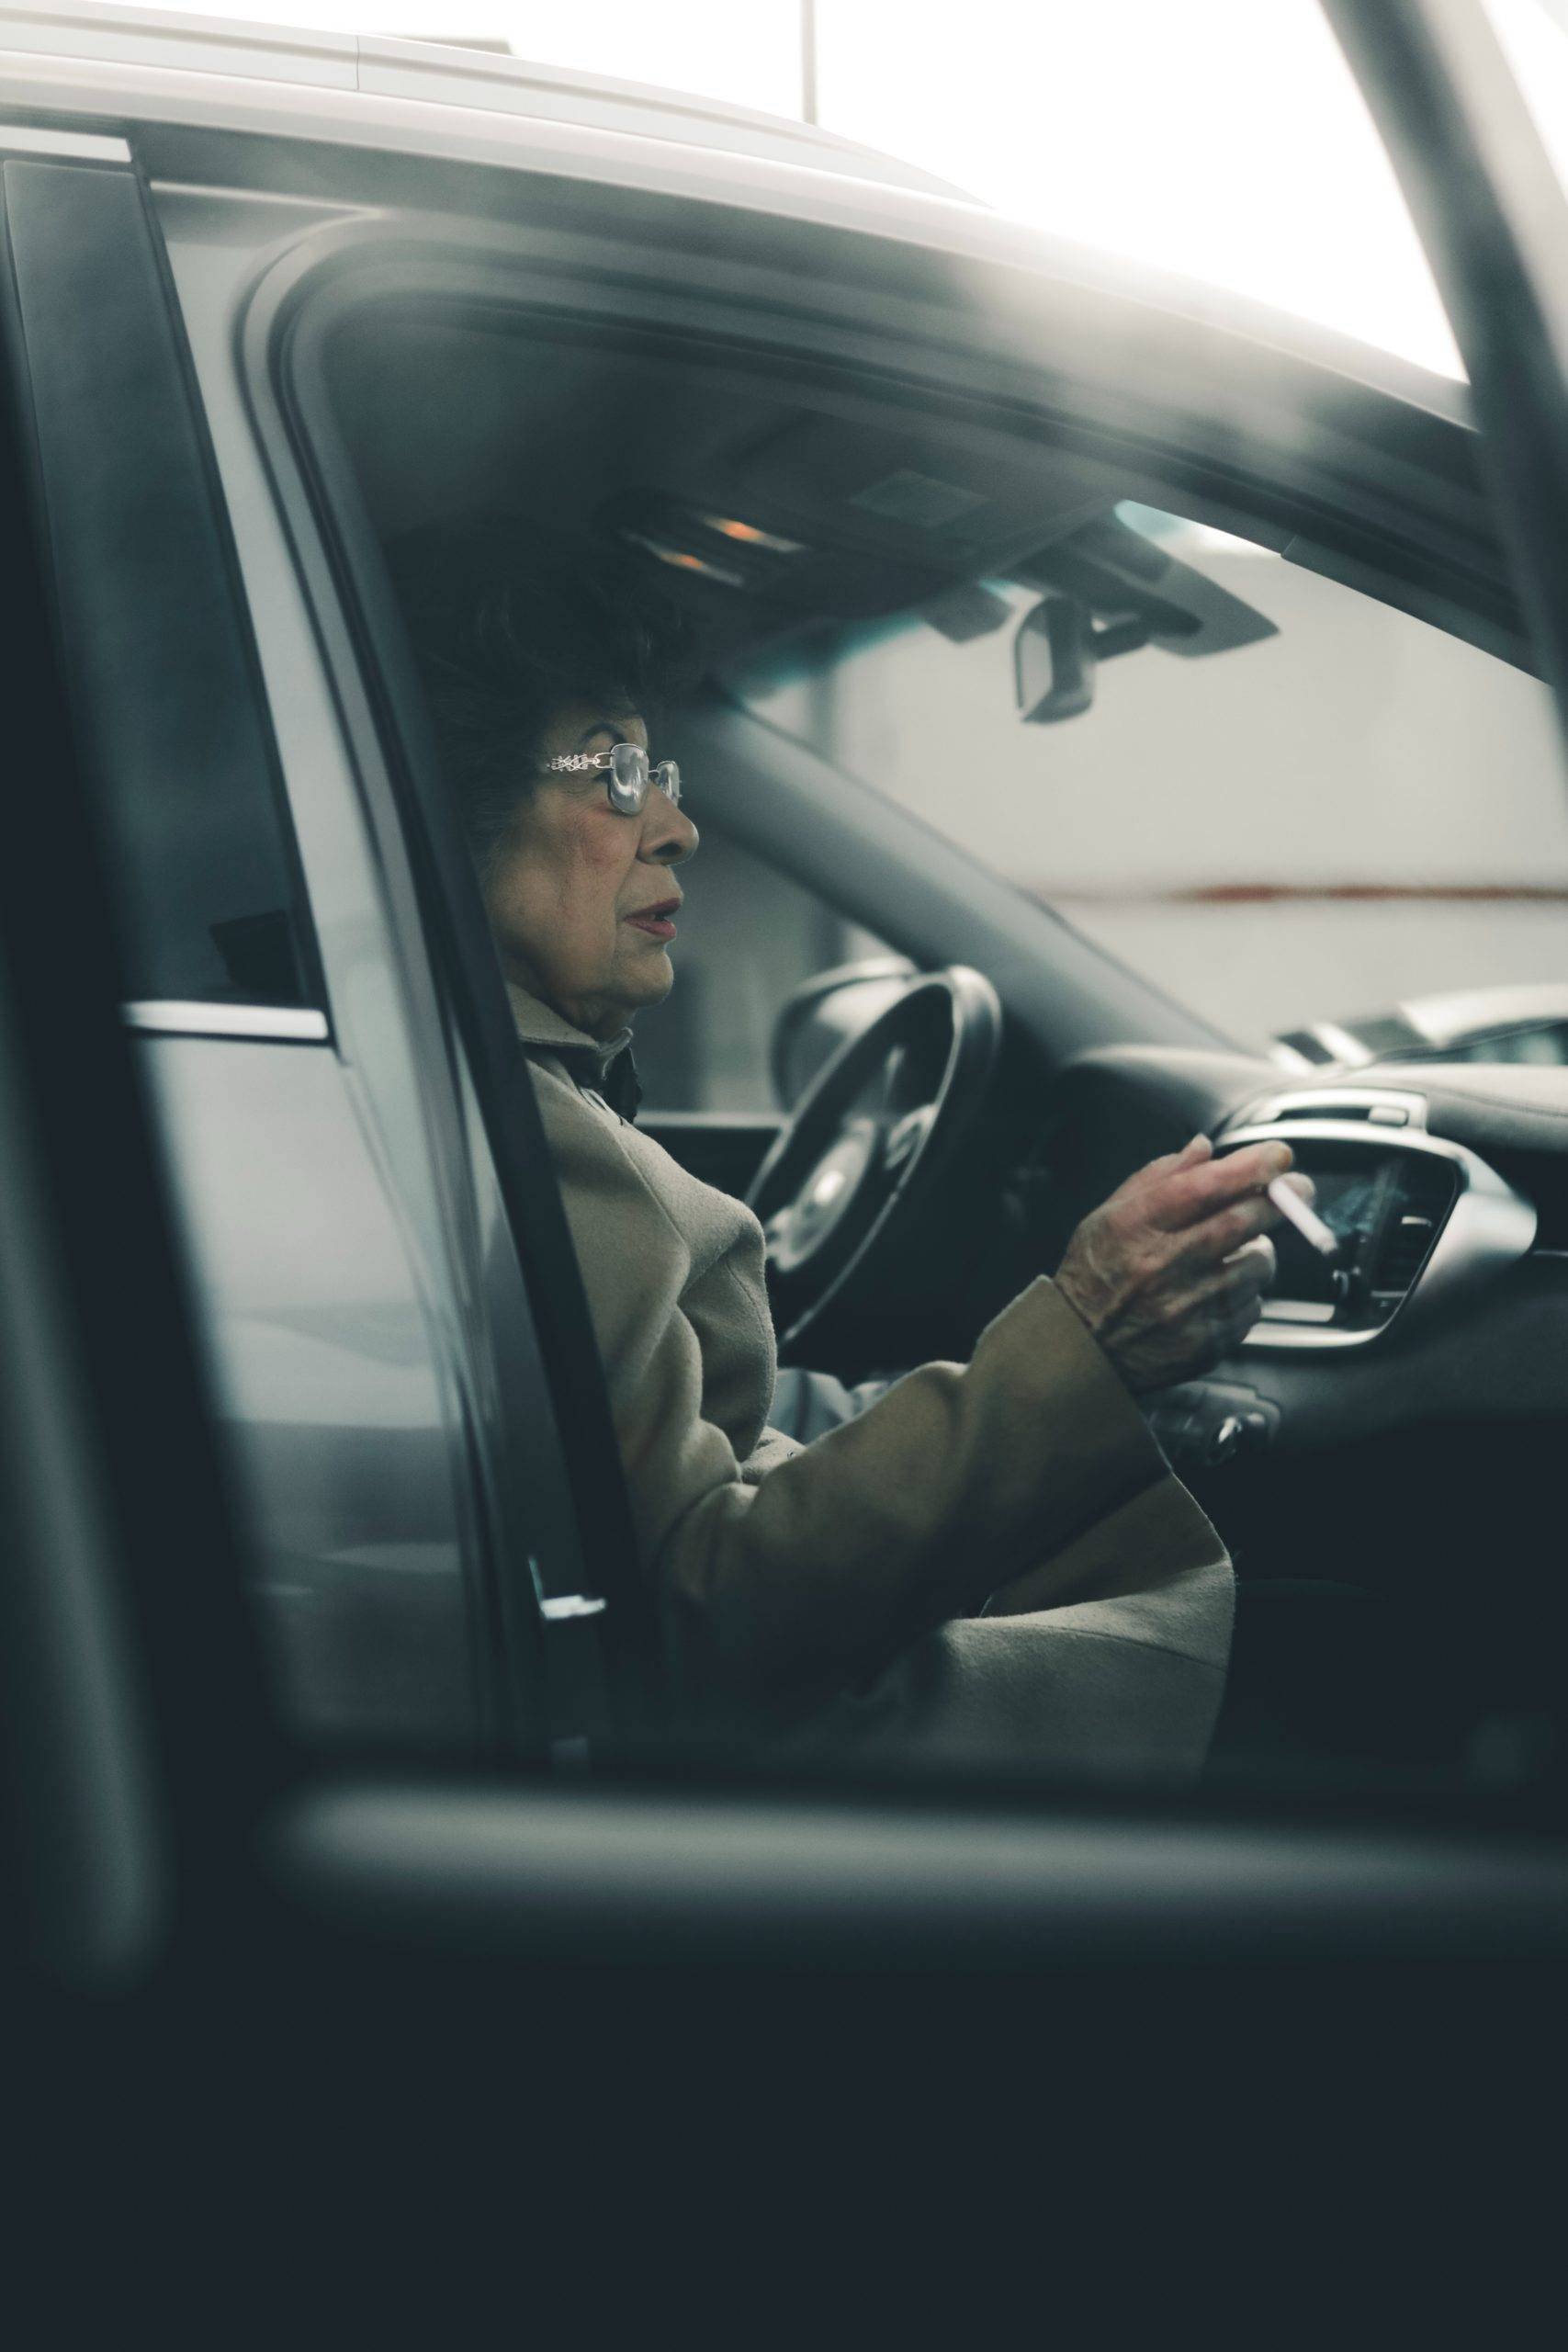 Old woman with cigarette sitting in a parked car